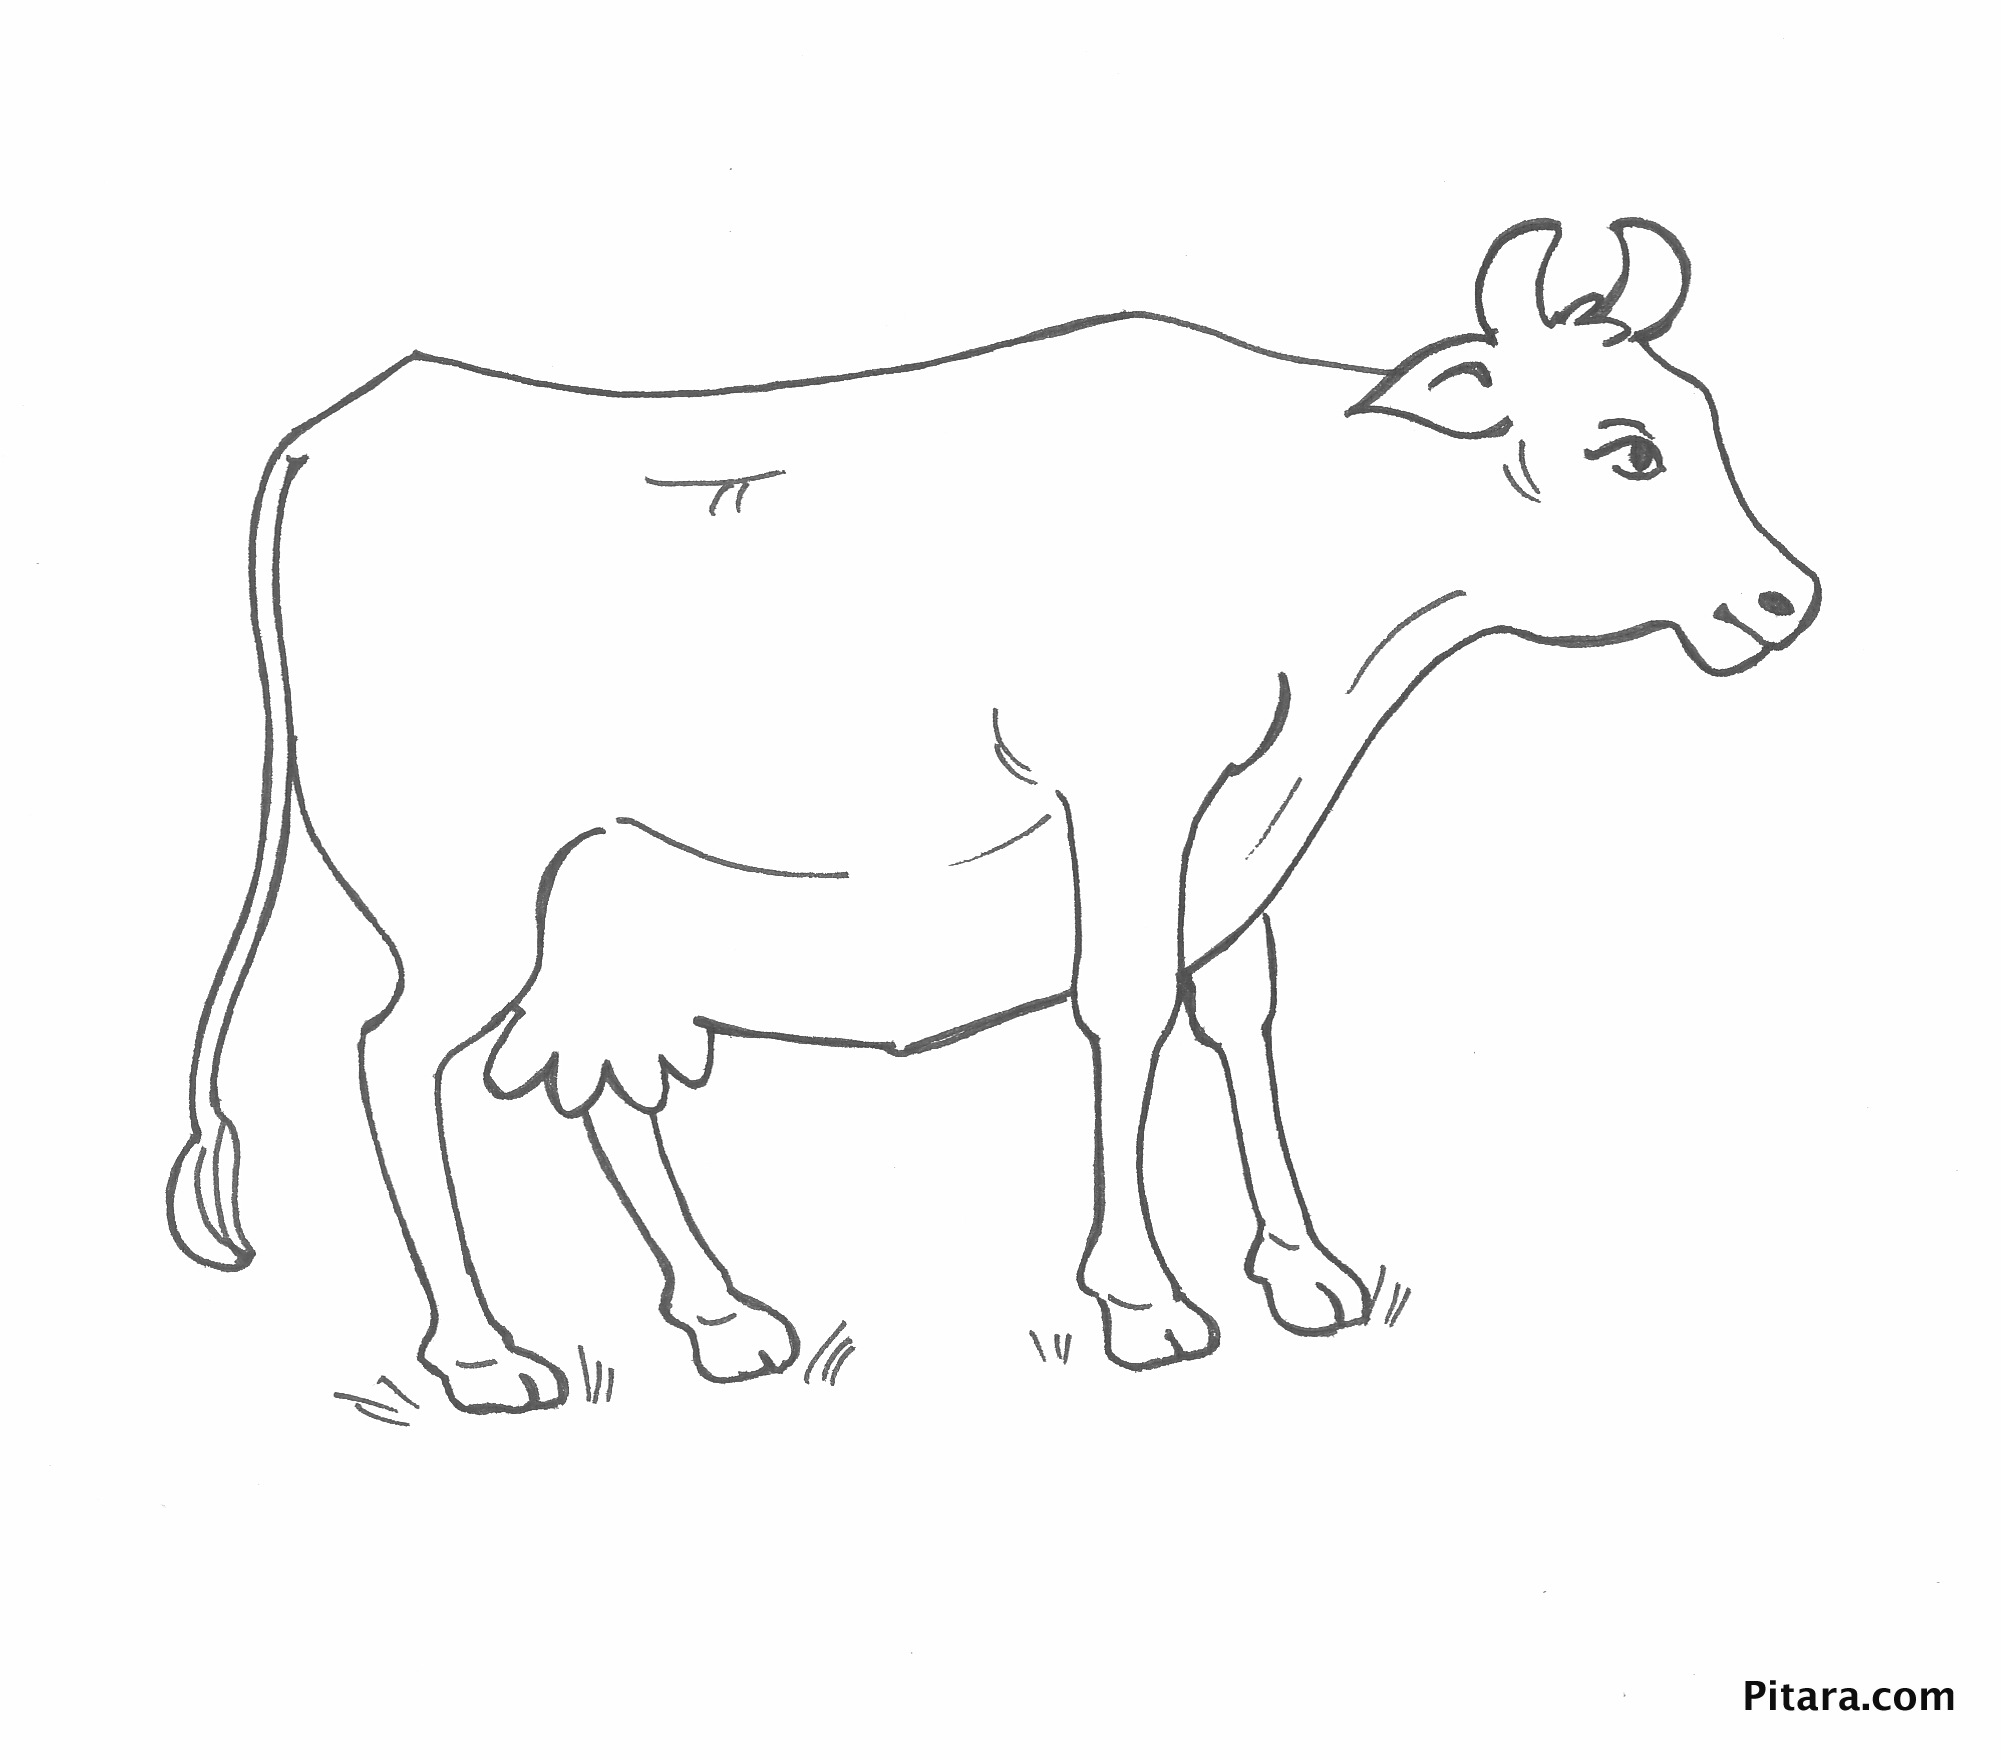 Cow – Coloring page